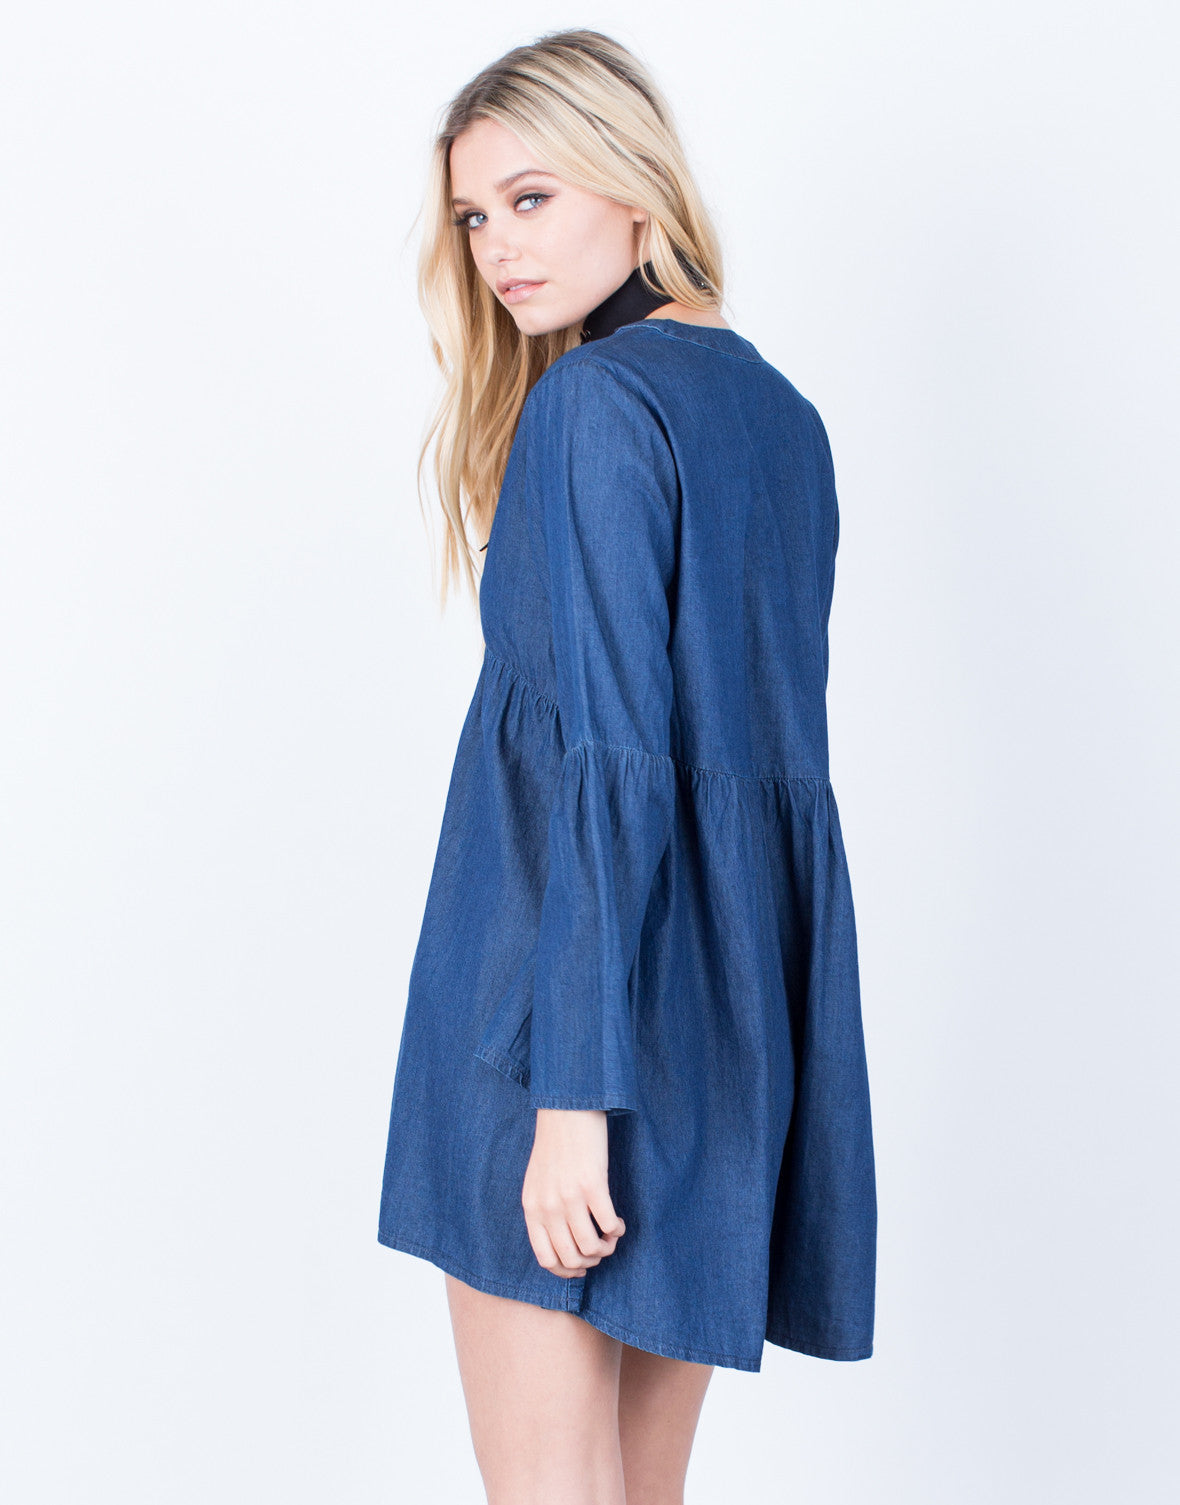 Back View of Bell Sleeve Denim Dress